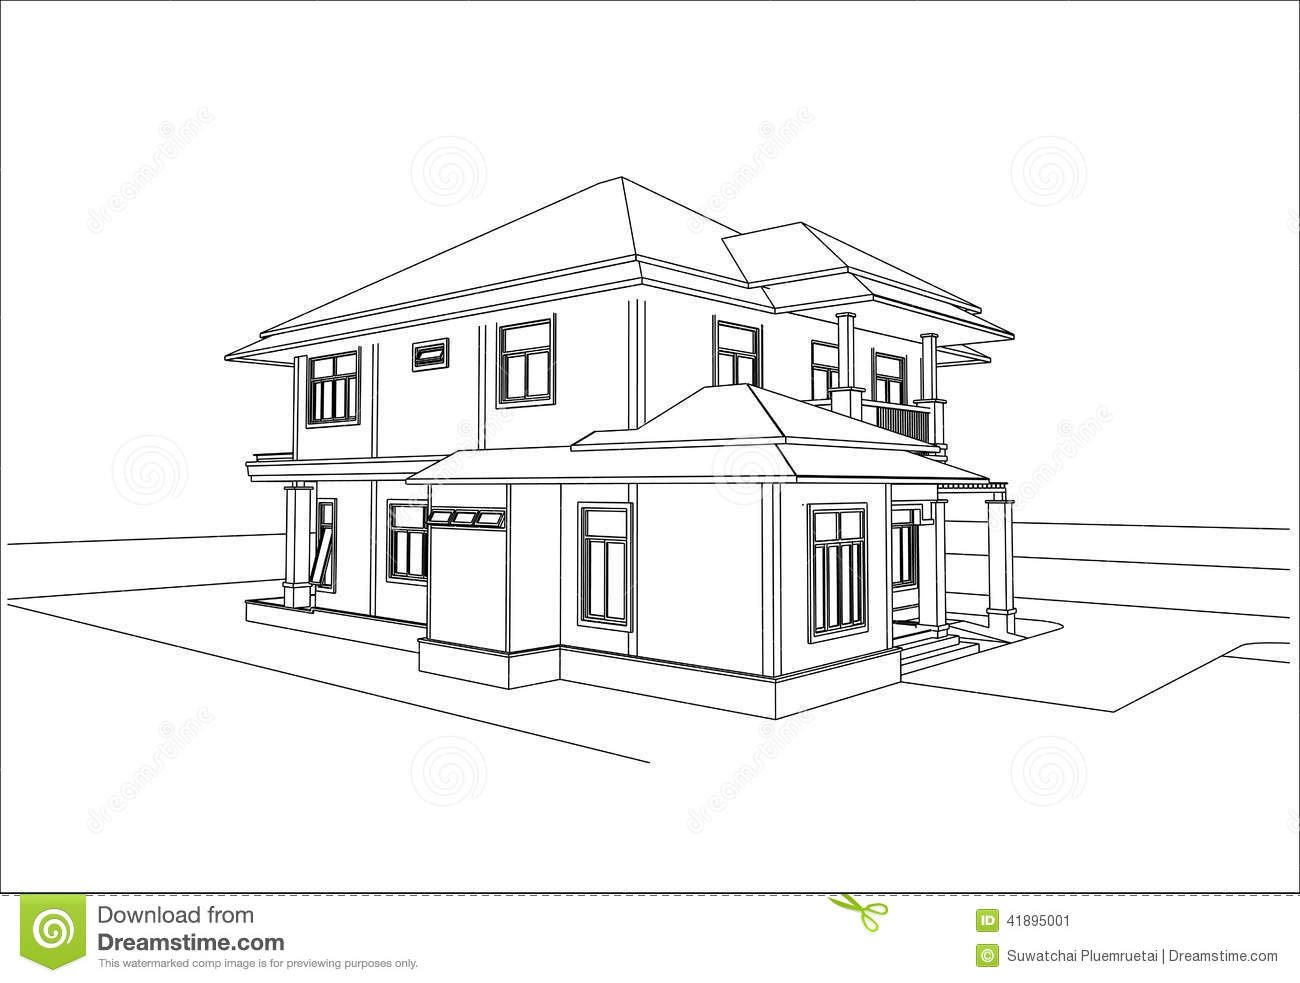 Plans And Elevations Analysis additionally Casa Tradicional De 1 Piso 3 Dormitorios 1 Bano moreover Family Icon Symbol Logotype Sketch In 16047551 besides Fantasy Castle Floor Plan furthermore Stock Illustration Sketch Design House Vector Image Illustration Can Be Scaled To Any Size Loss Resolution Image Will Image41895001. on simple small house plans